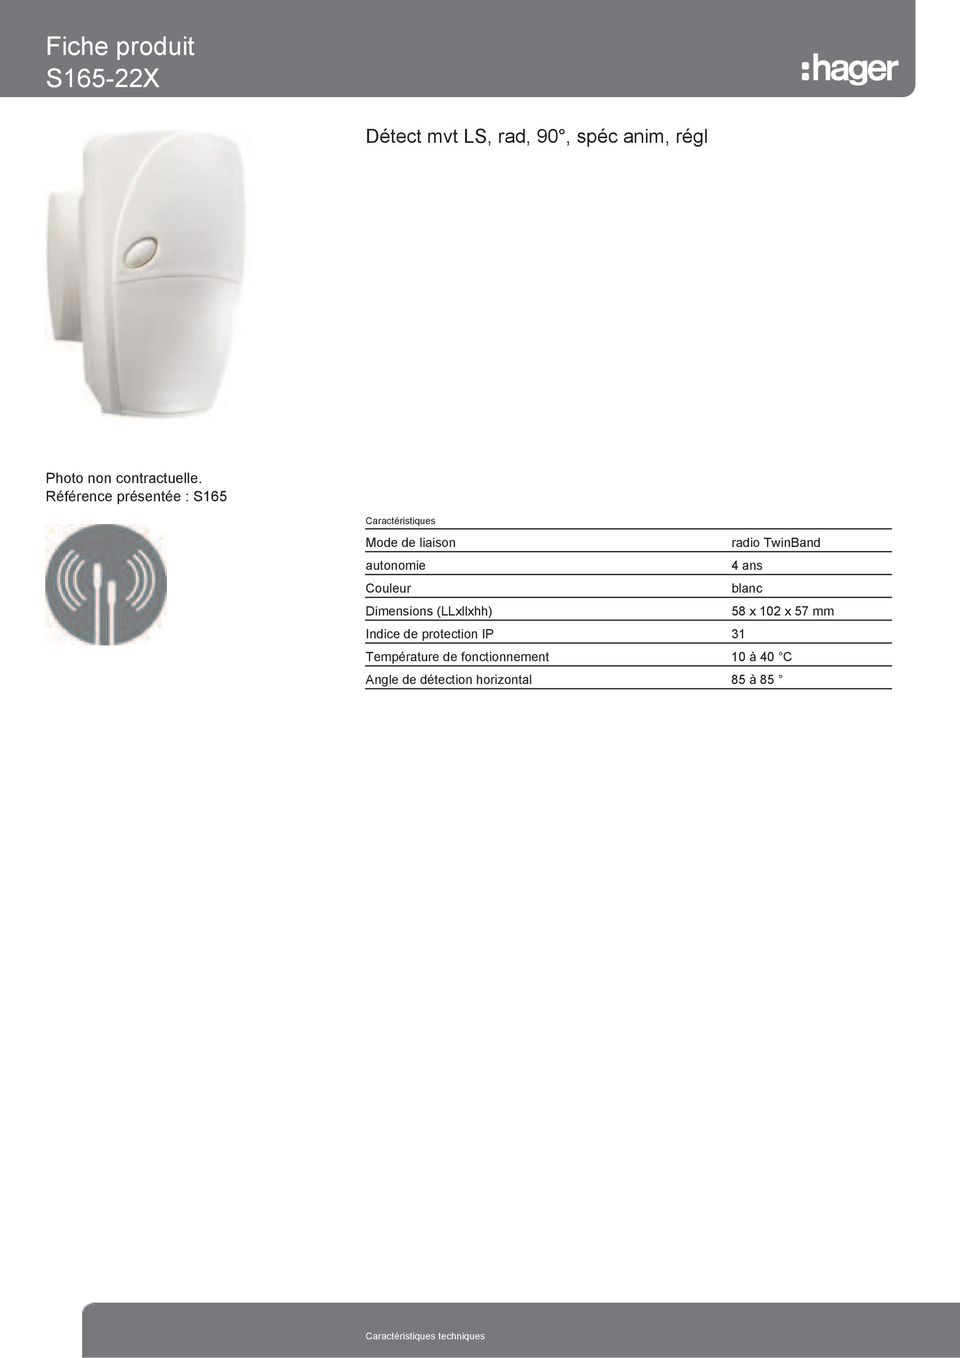 Couleur blanc Dimensions (LLxllxhh) 58 x 102 x 57 mm Indice de protection IP 31